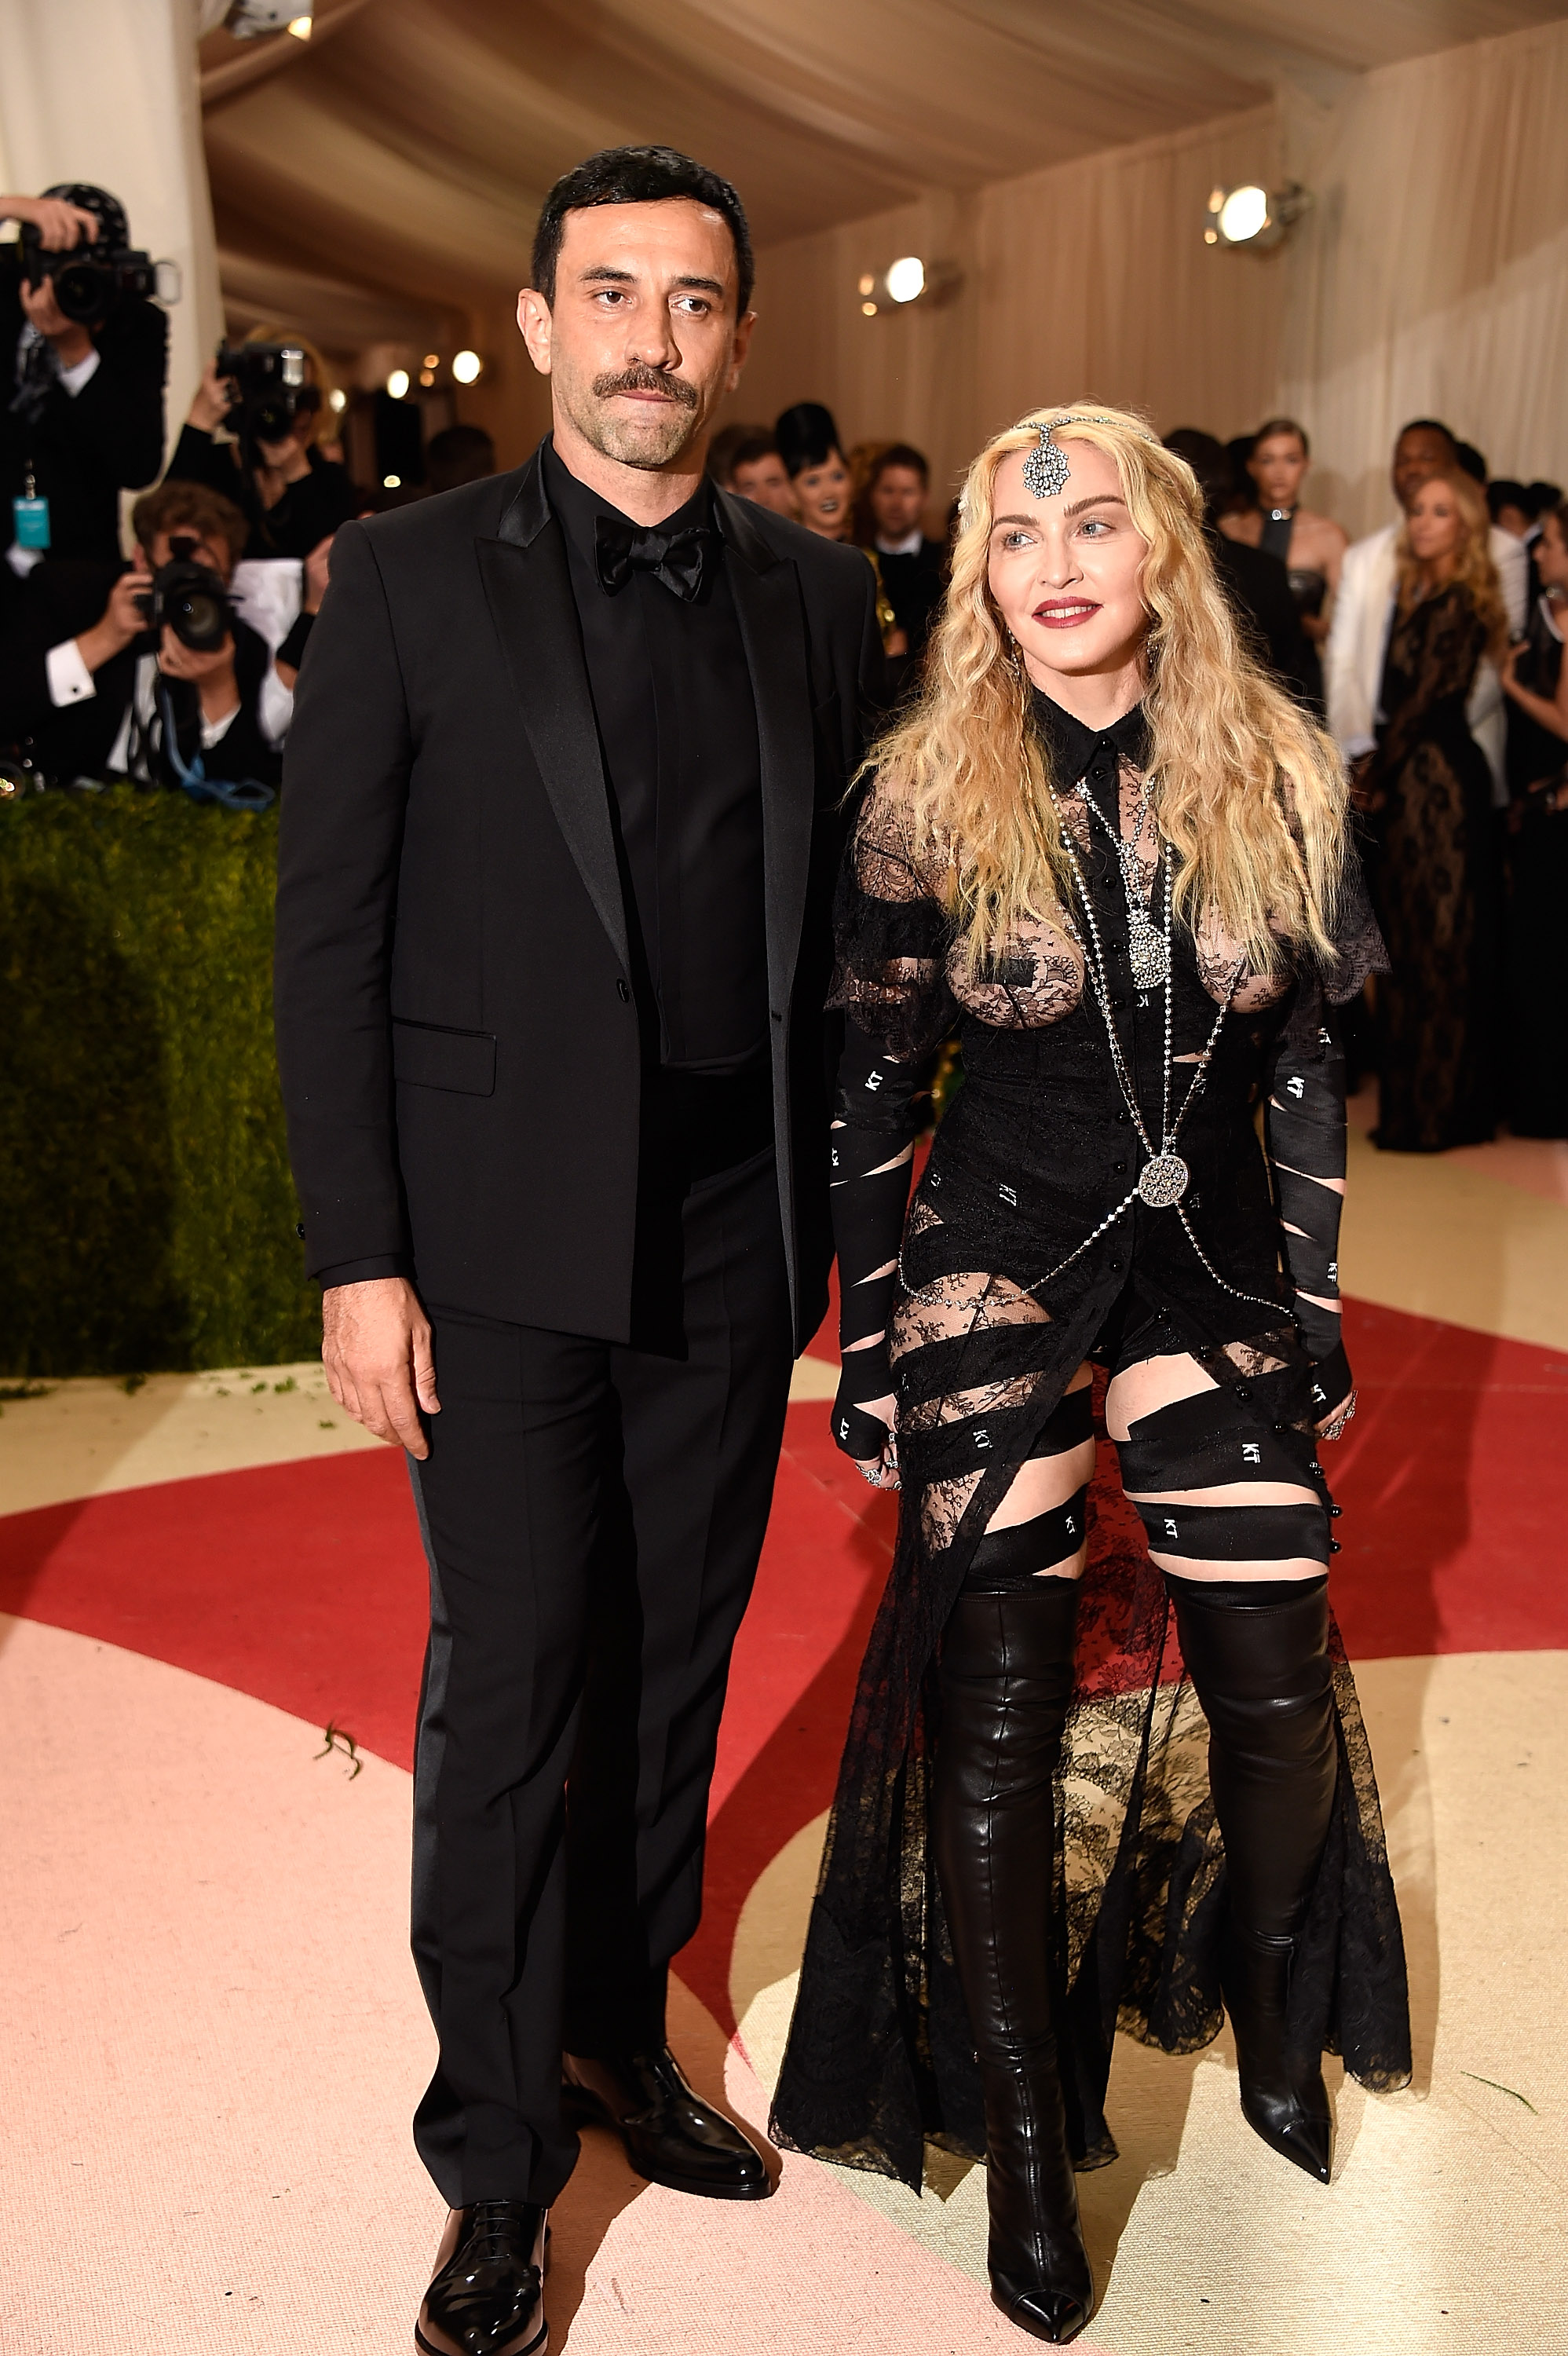 Riccardo Tisci and Madonna attend  Manus x Machina: Fashion In An Age Of Technology  Costume Institute Gala at Metropolitan Museum of Art on May 2, 2016 in New York City.